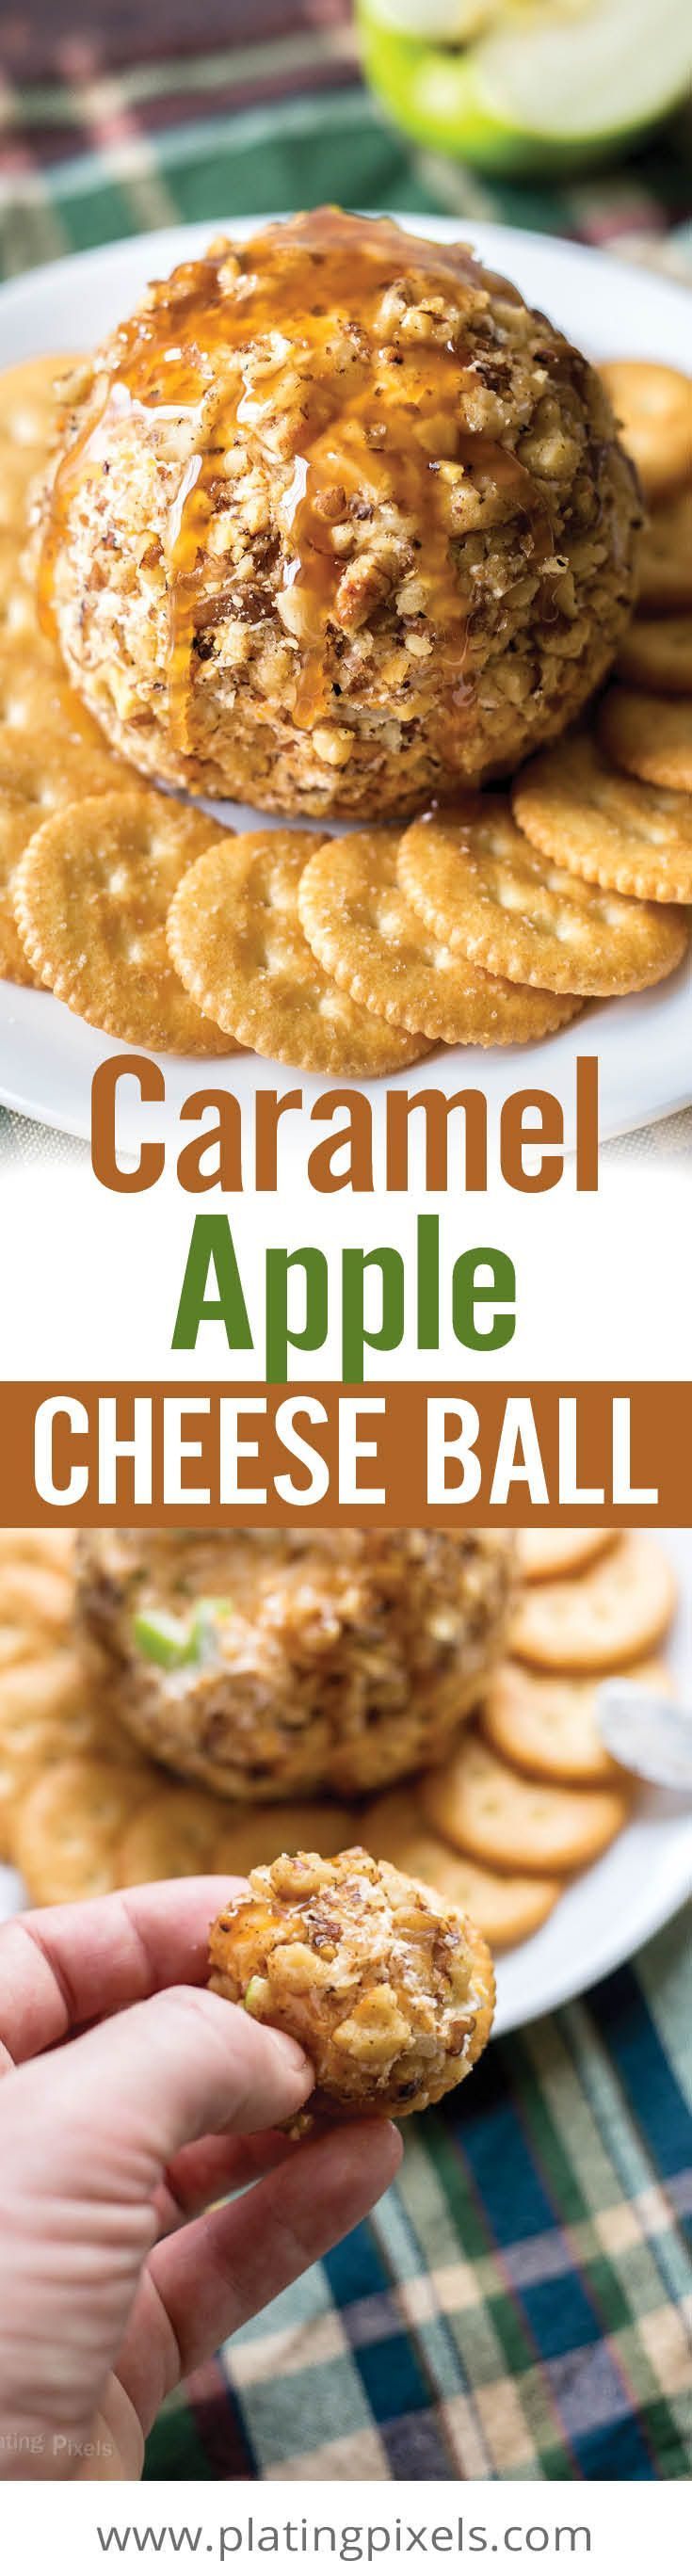 Caramel apple cheese ball makes a quick and easy holiday appetizer. Simply mix cream cheese, sharp cheddar, green apple, nutmeg and caramel; then serve over crackers. [ad] #HolidayRITZ - www.platingpixels.com